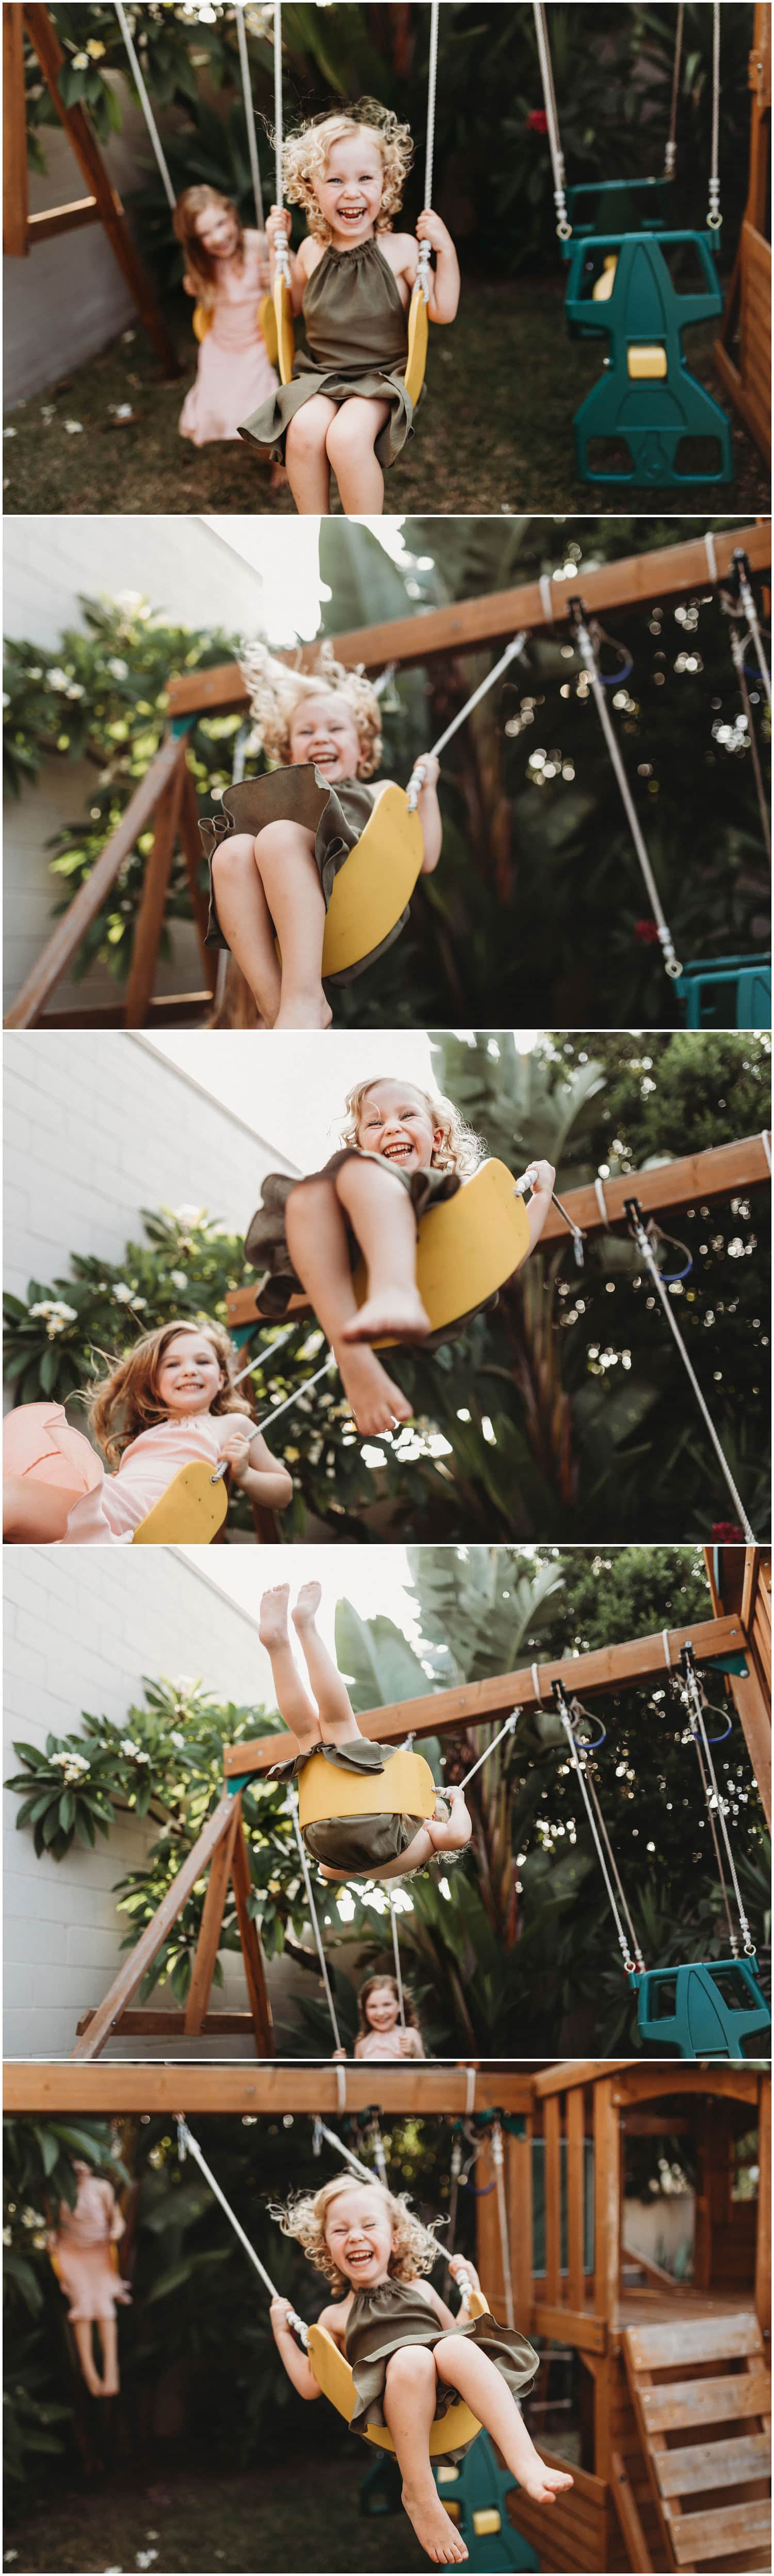 Lifestyle-photography-sutherland-shire-backyard-session-sydney-3